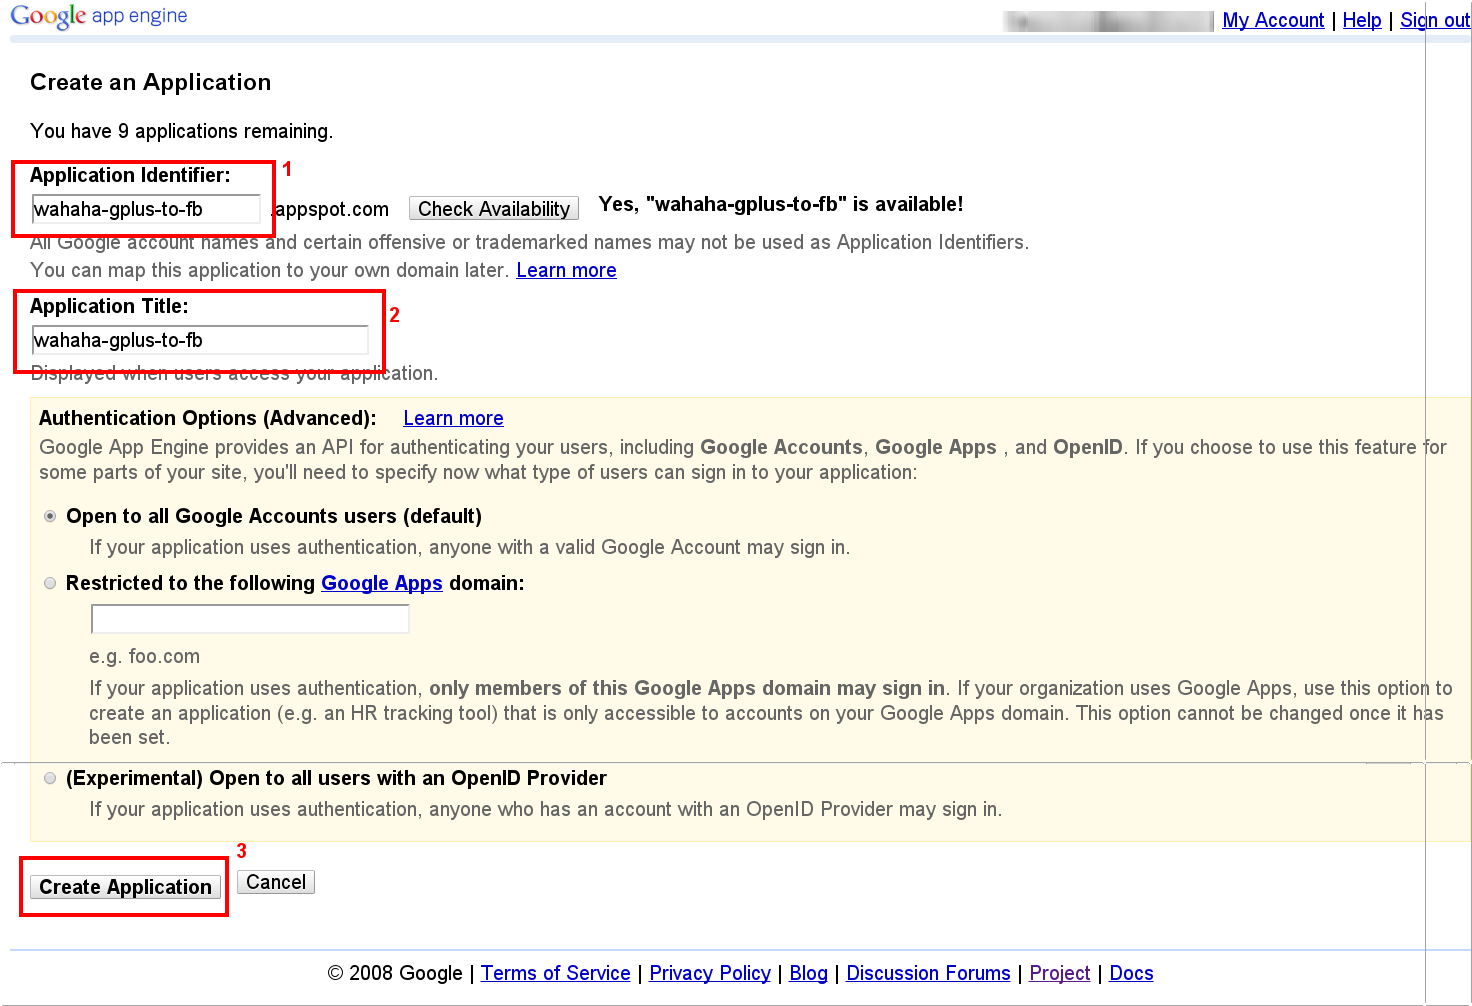 Everlasting Search: Repost Google Plus Activities to